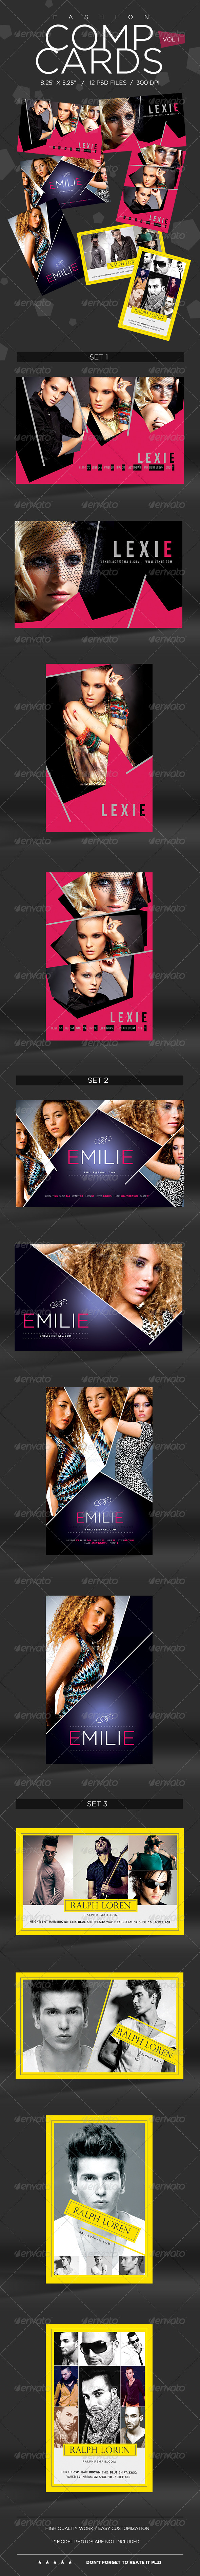 Model Comp Card Template Kit Vol1 - Miscellaneous Events